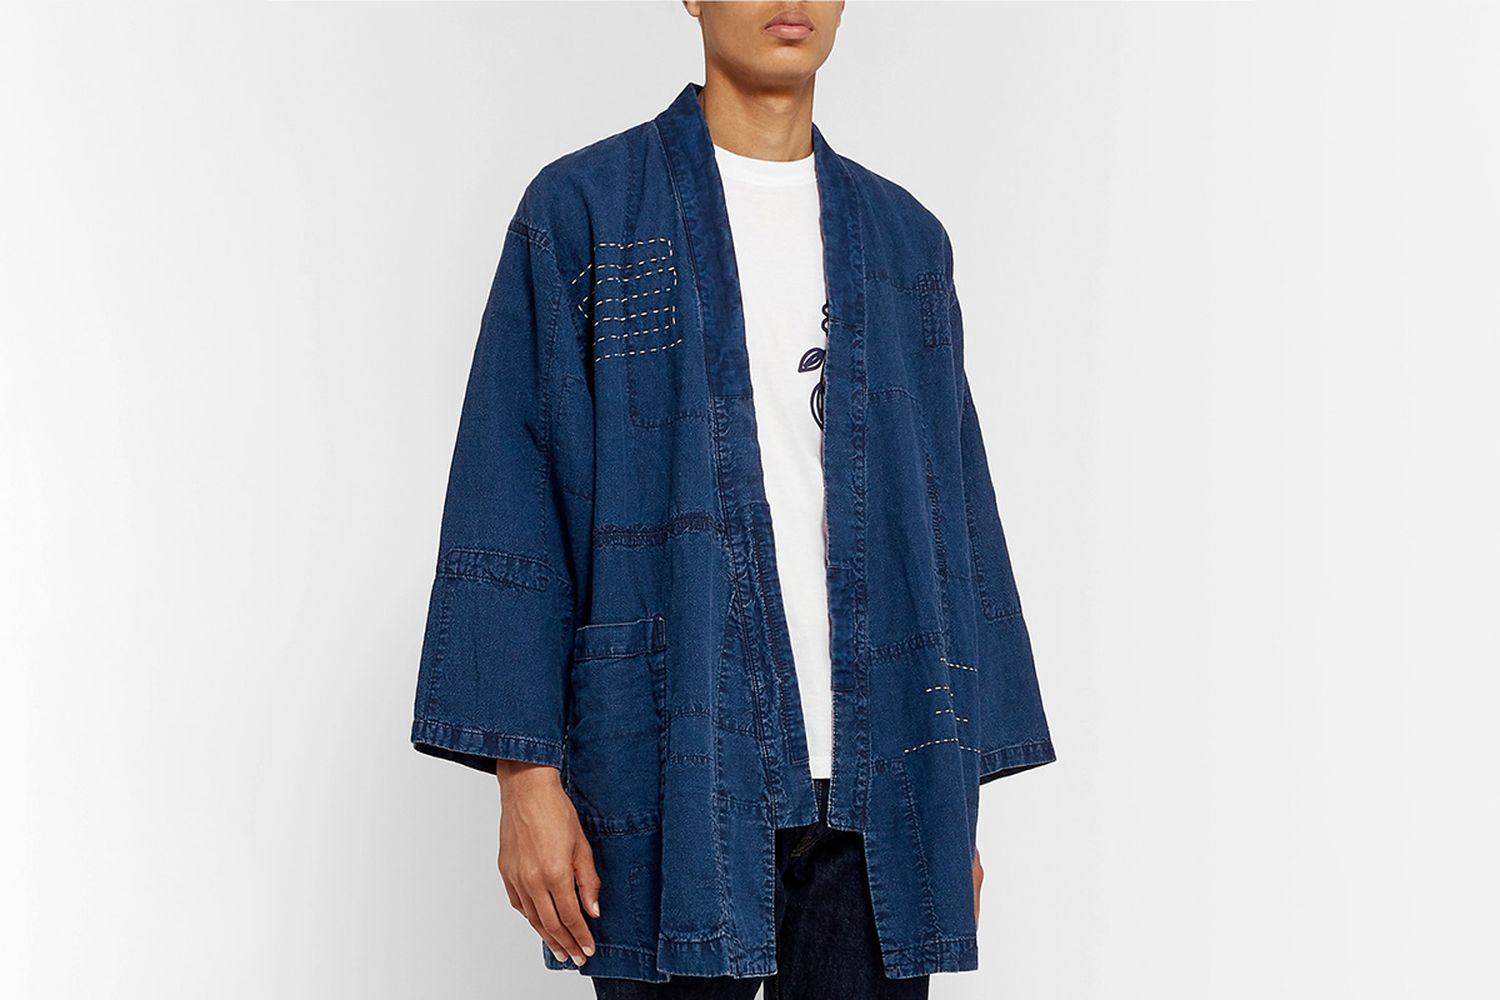 Patchwork Embroidered Linen Jacket